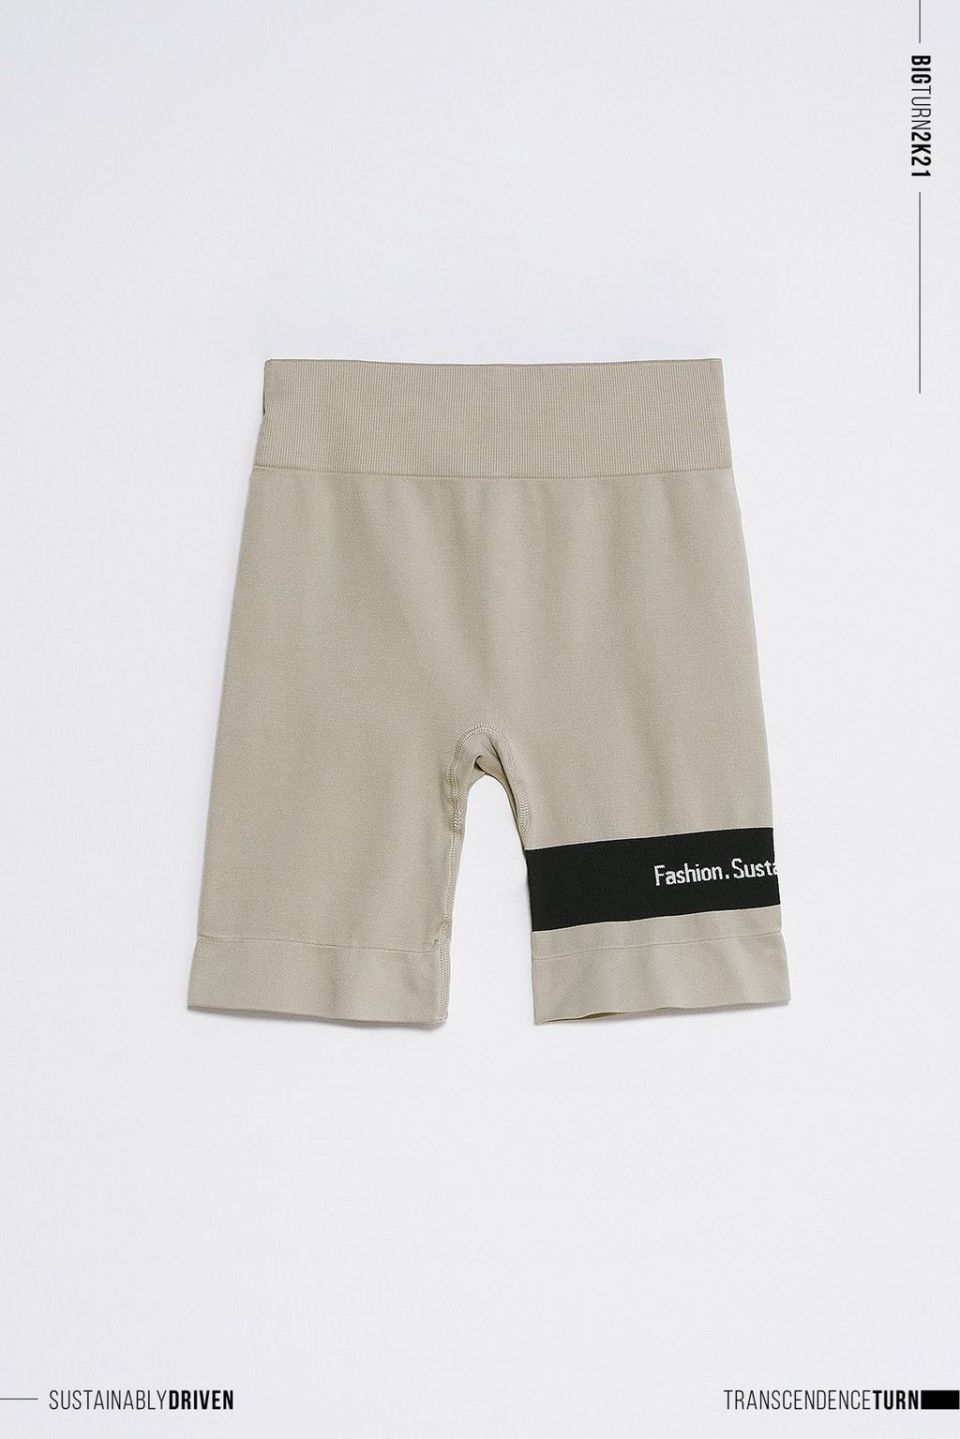 Limited Edition High Waist Cycling Shorts